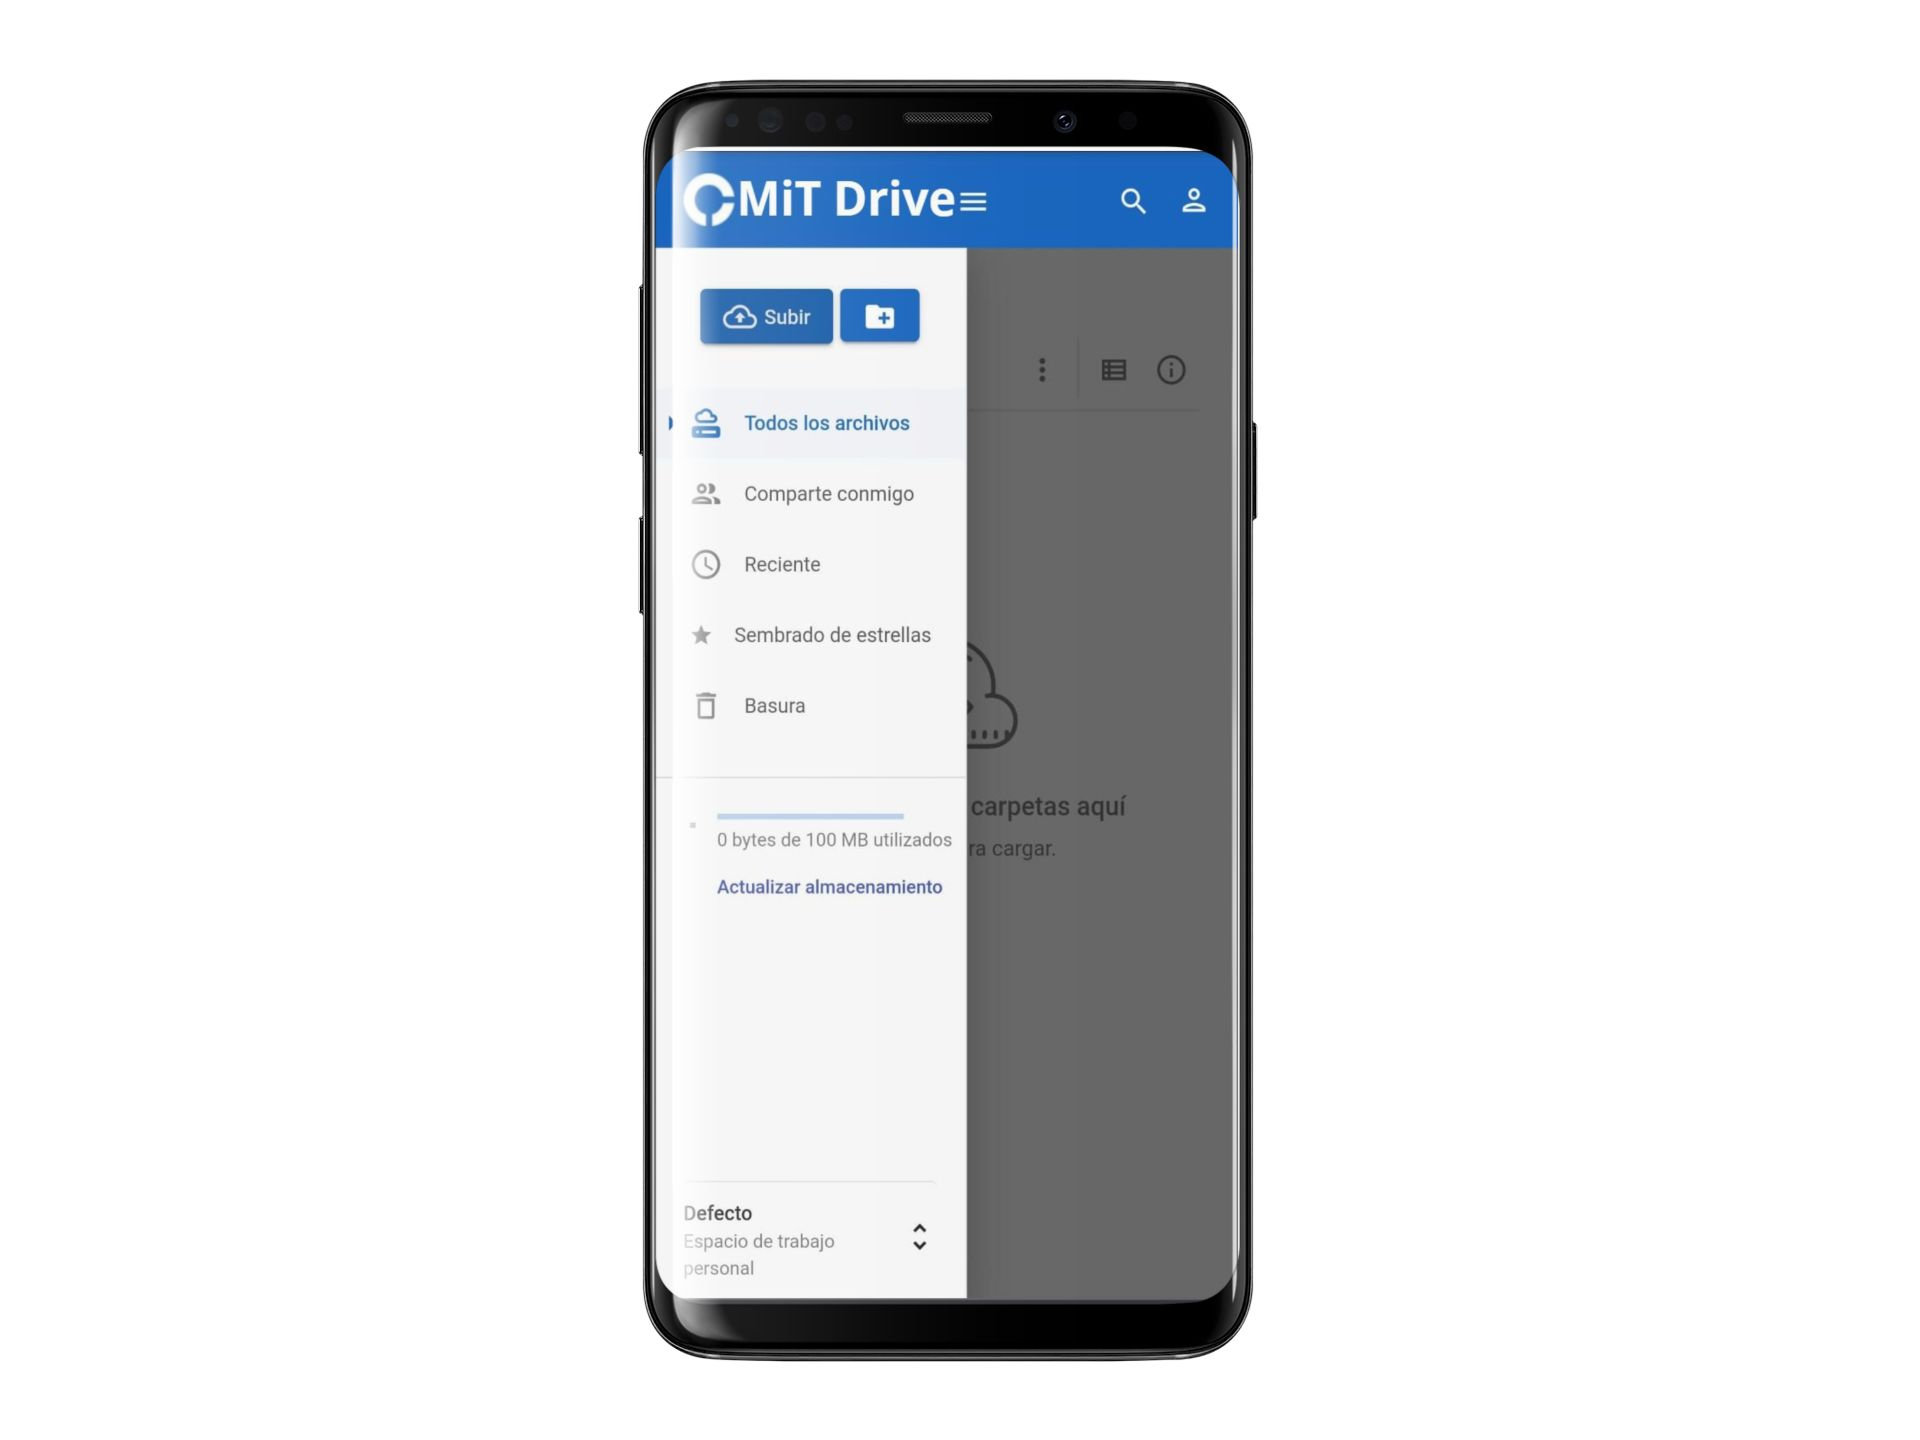 galaxy s9 mockup template against transparent background a19508 4 MiT Drive